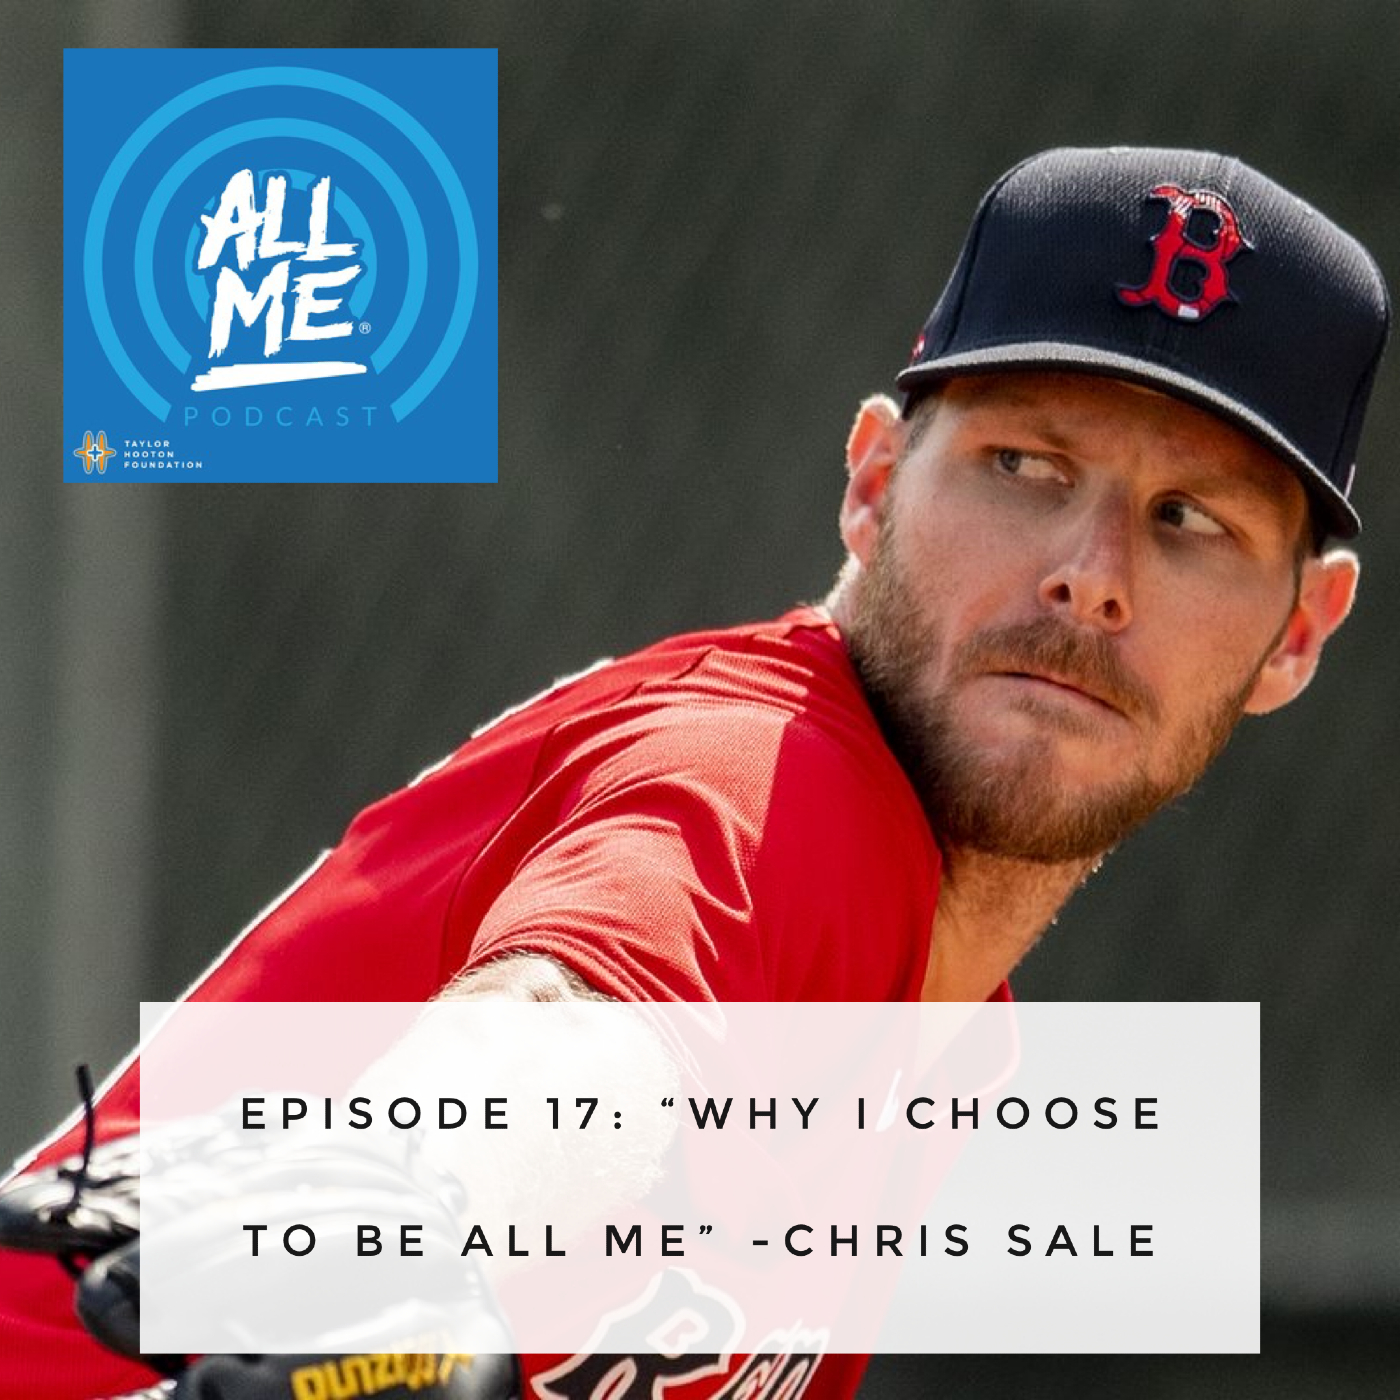 Episode 17: Why I Choose to be ALL ME® - MLB Pitcher, Chris Sale